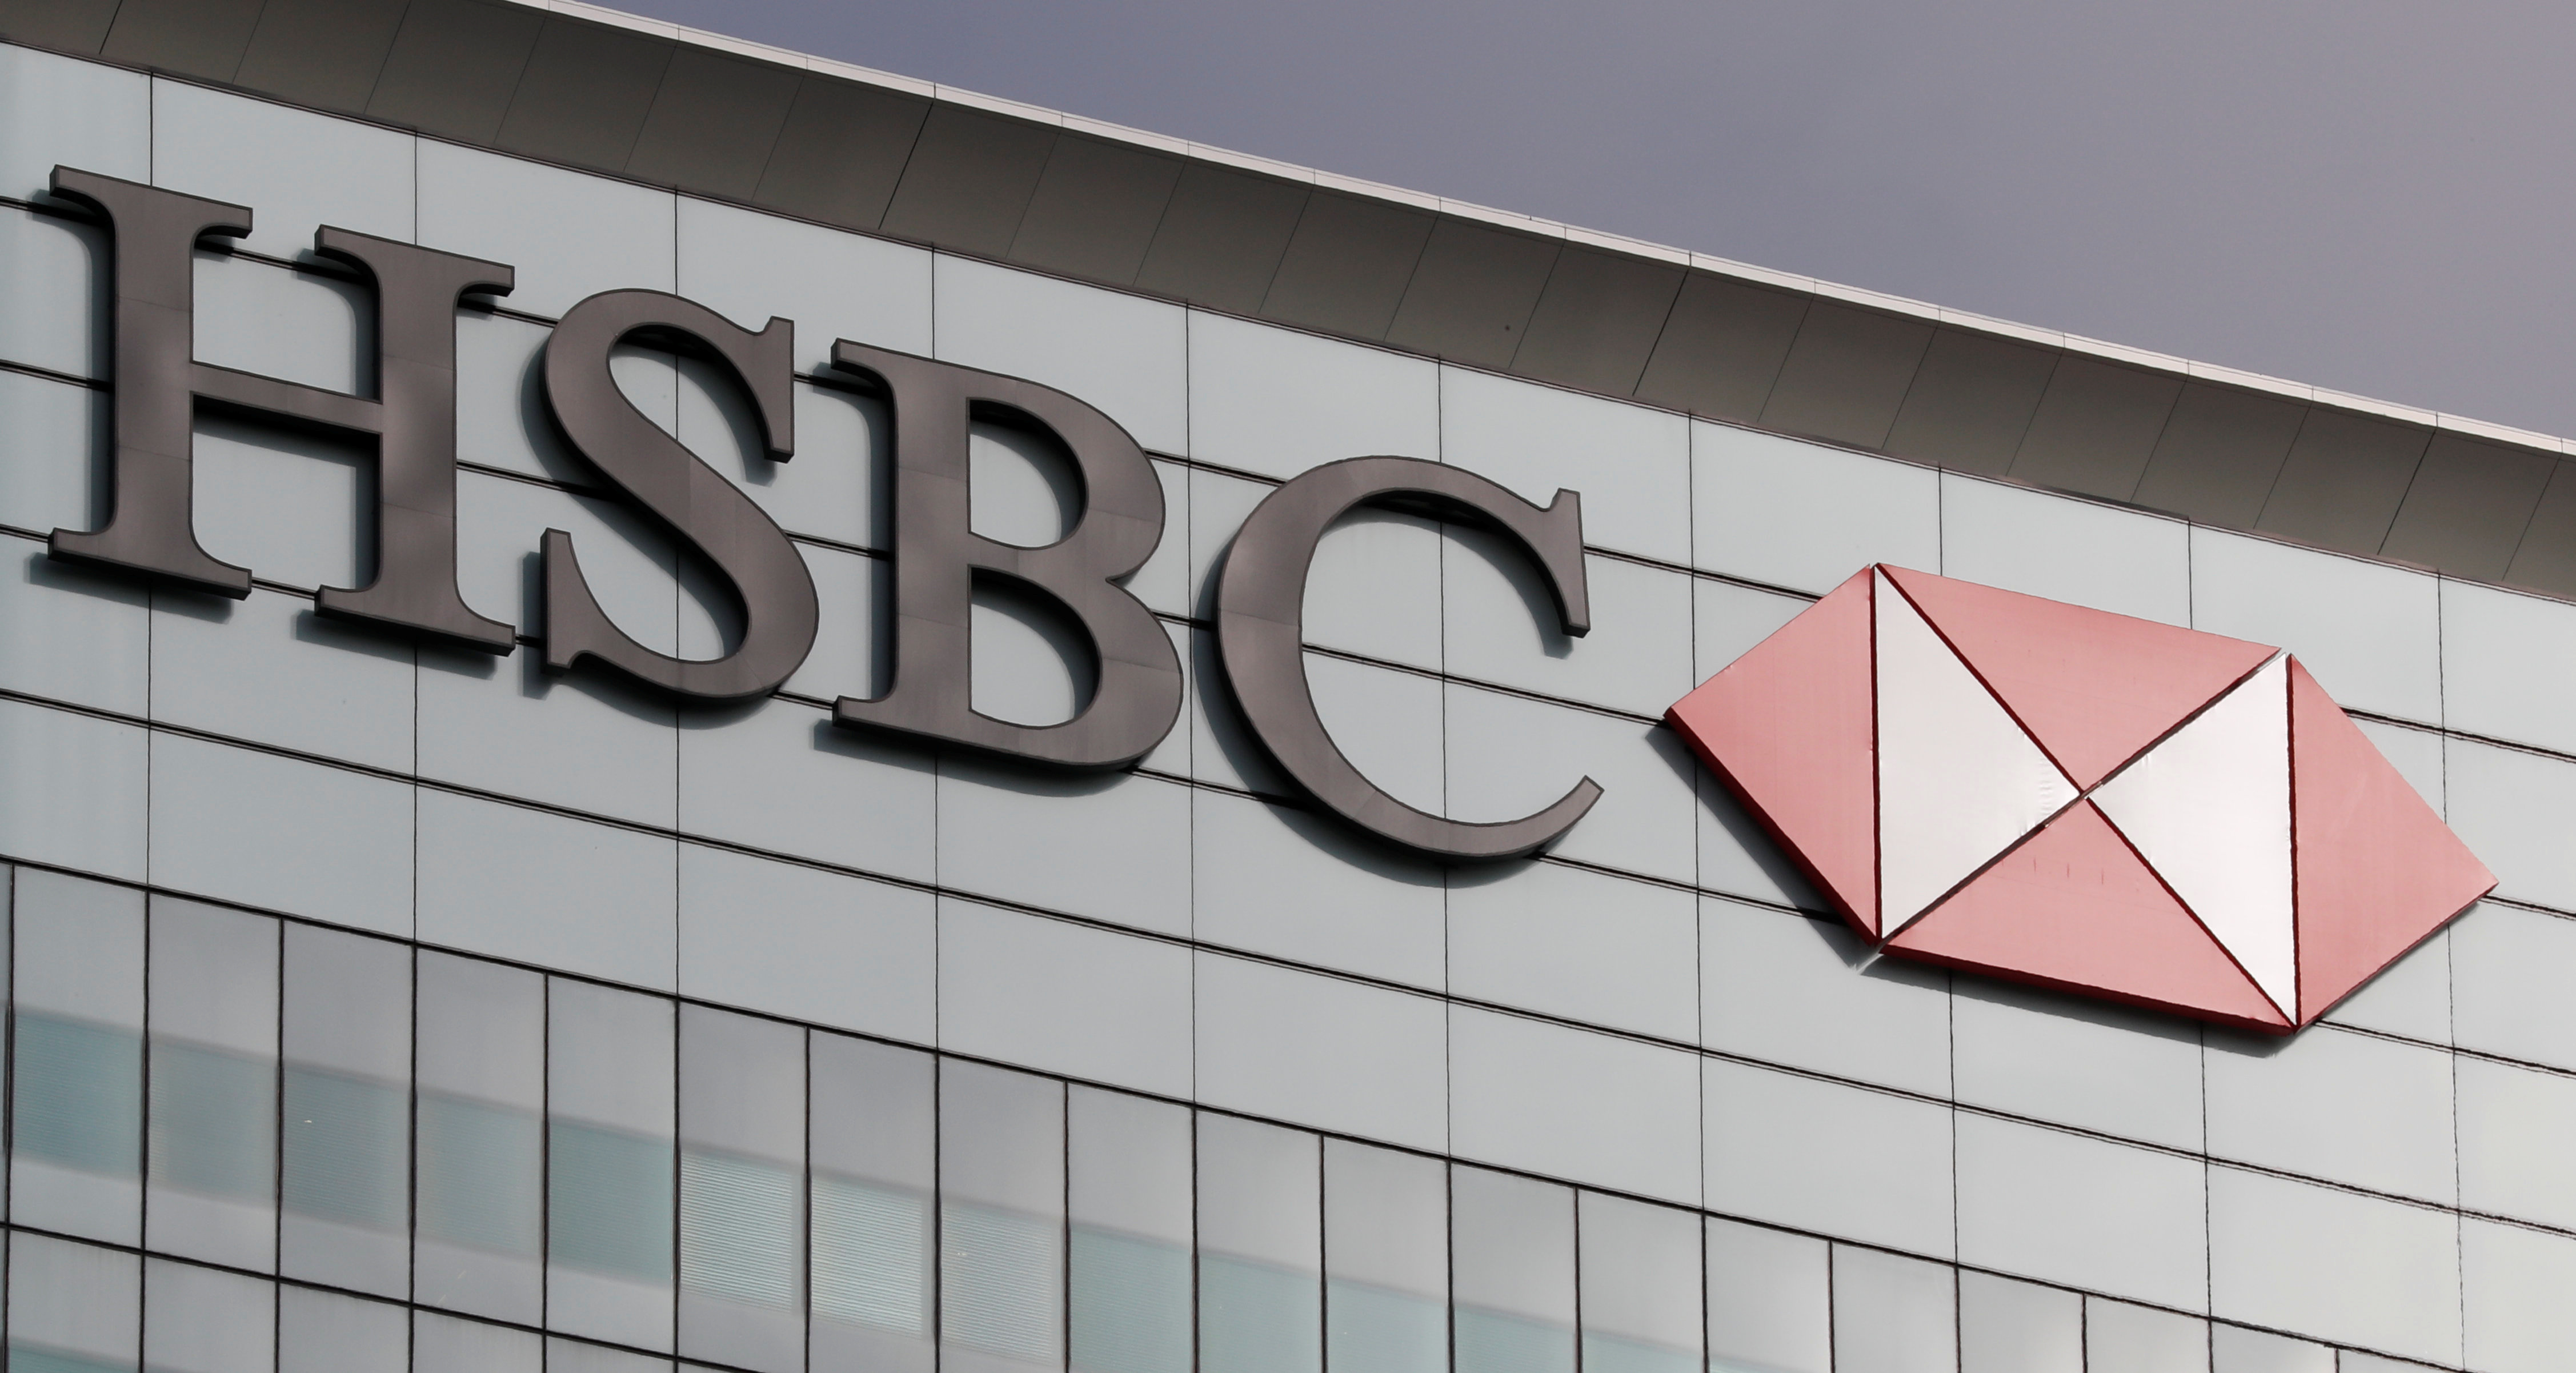 The HSBC logo is seen in the Canary Wharf financial district in London,Britain, March 3, 2016.  REUTERS/Reinhard Krause/File Photo